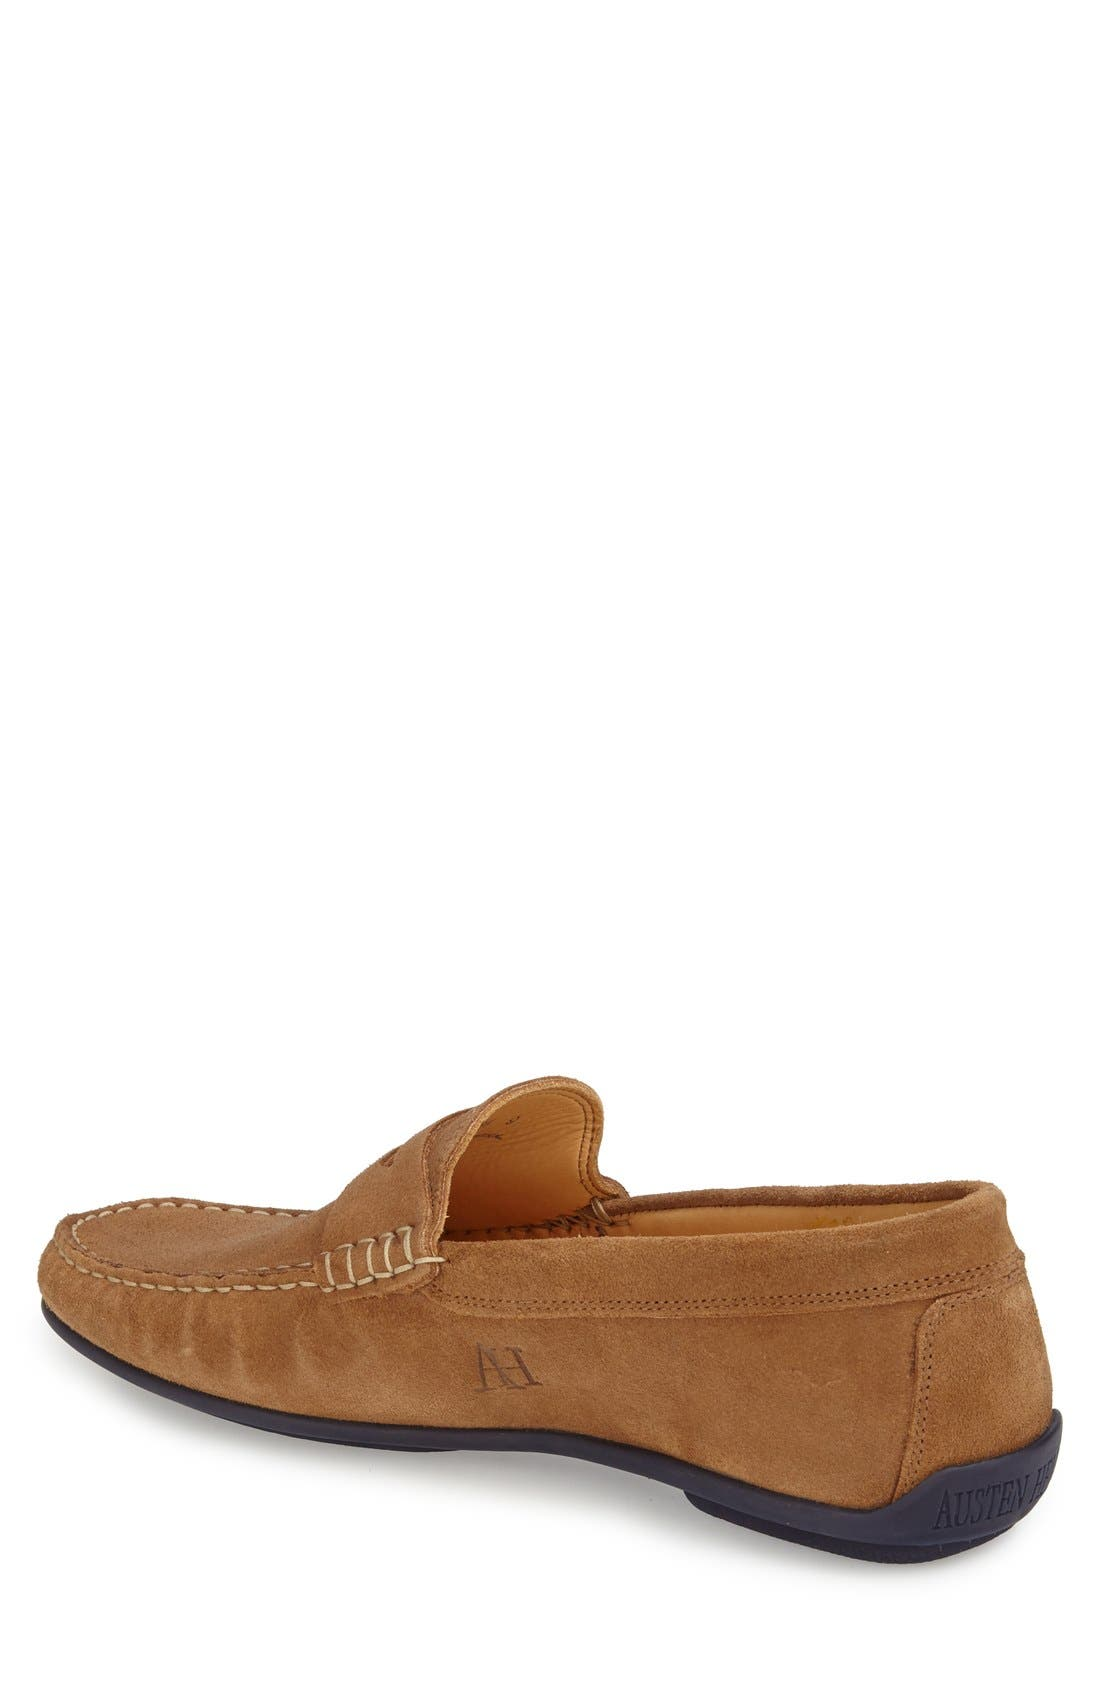 Alternate Image 2  - Austen Heller 'Parkers' Penny Loafer (Men)